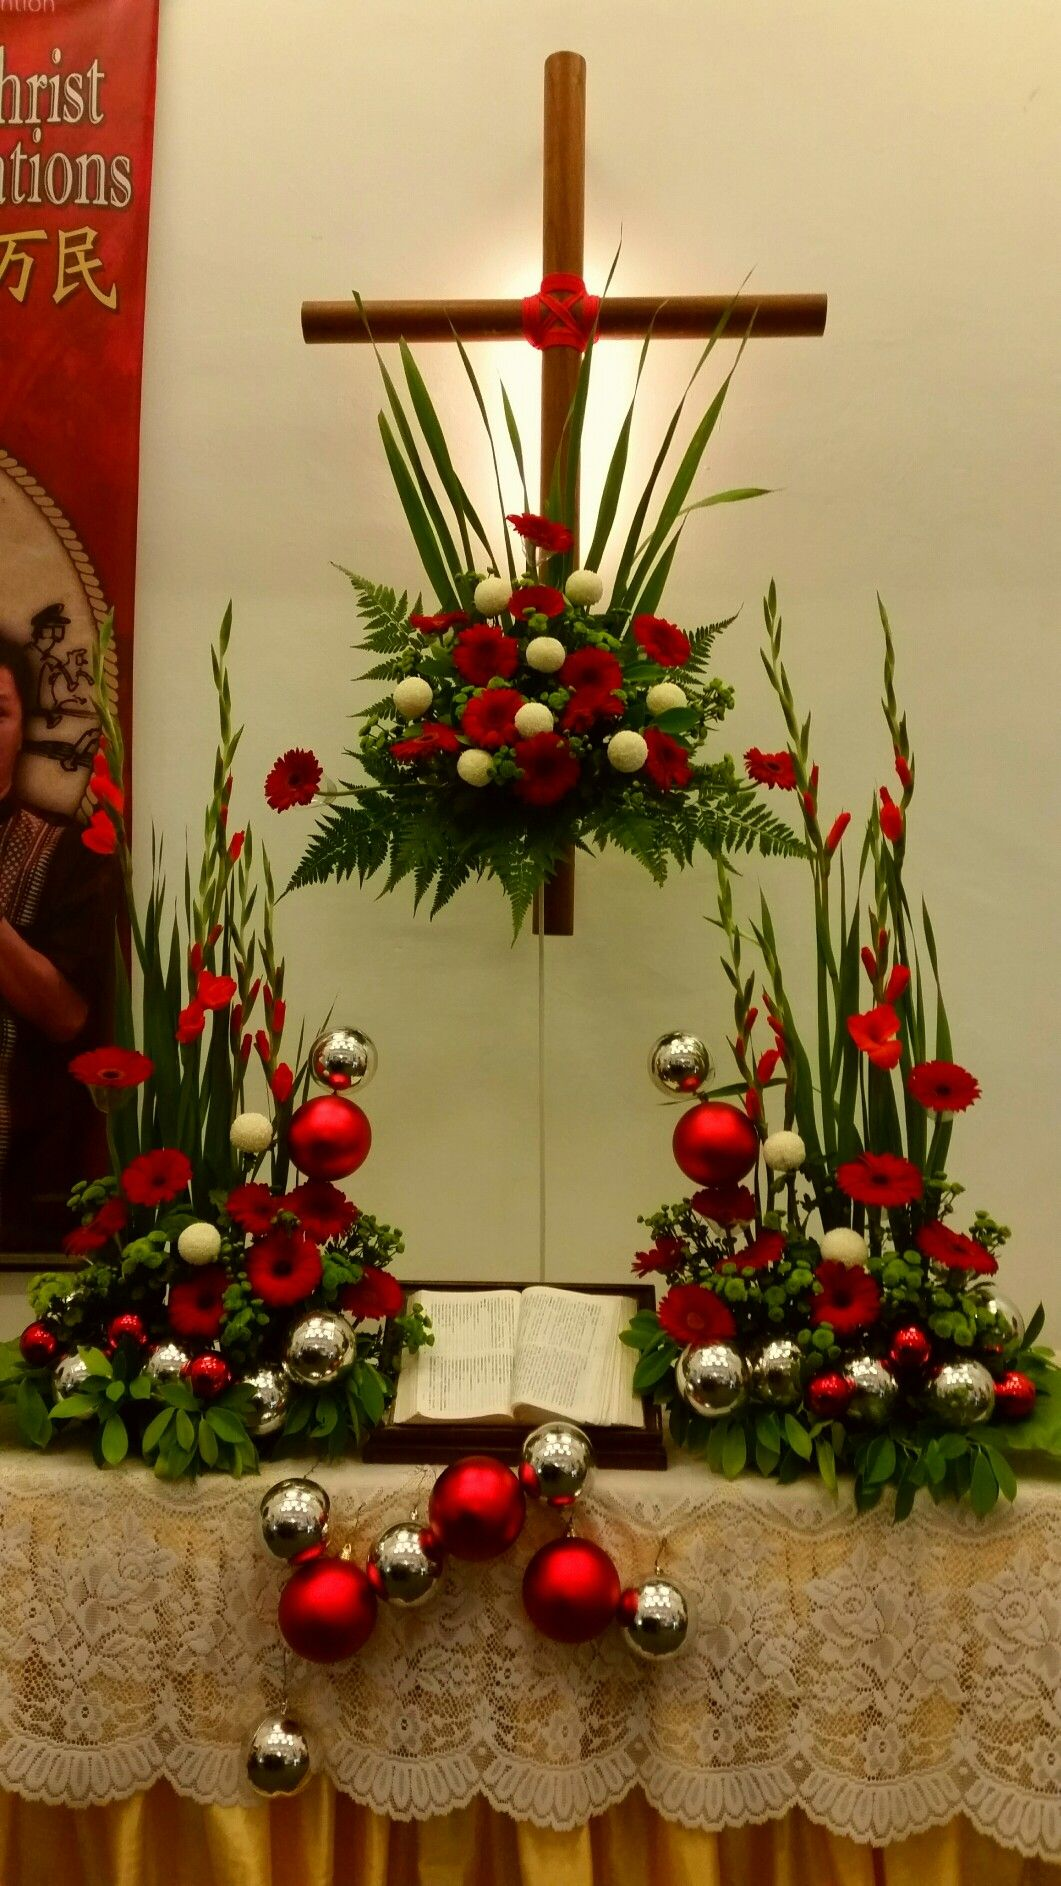 Christmas Altar Flower Arrangements 2016 Christmas Flower Arrangements Church Christmas Decorations Christmas Flowers